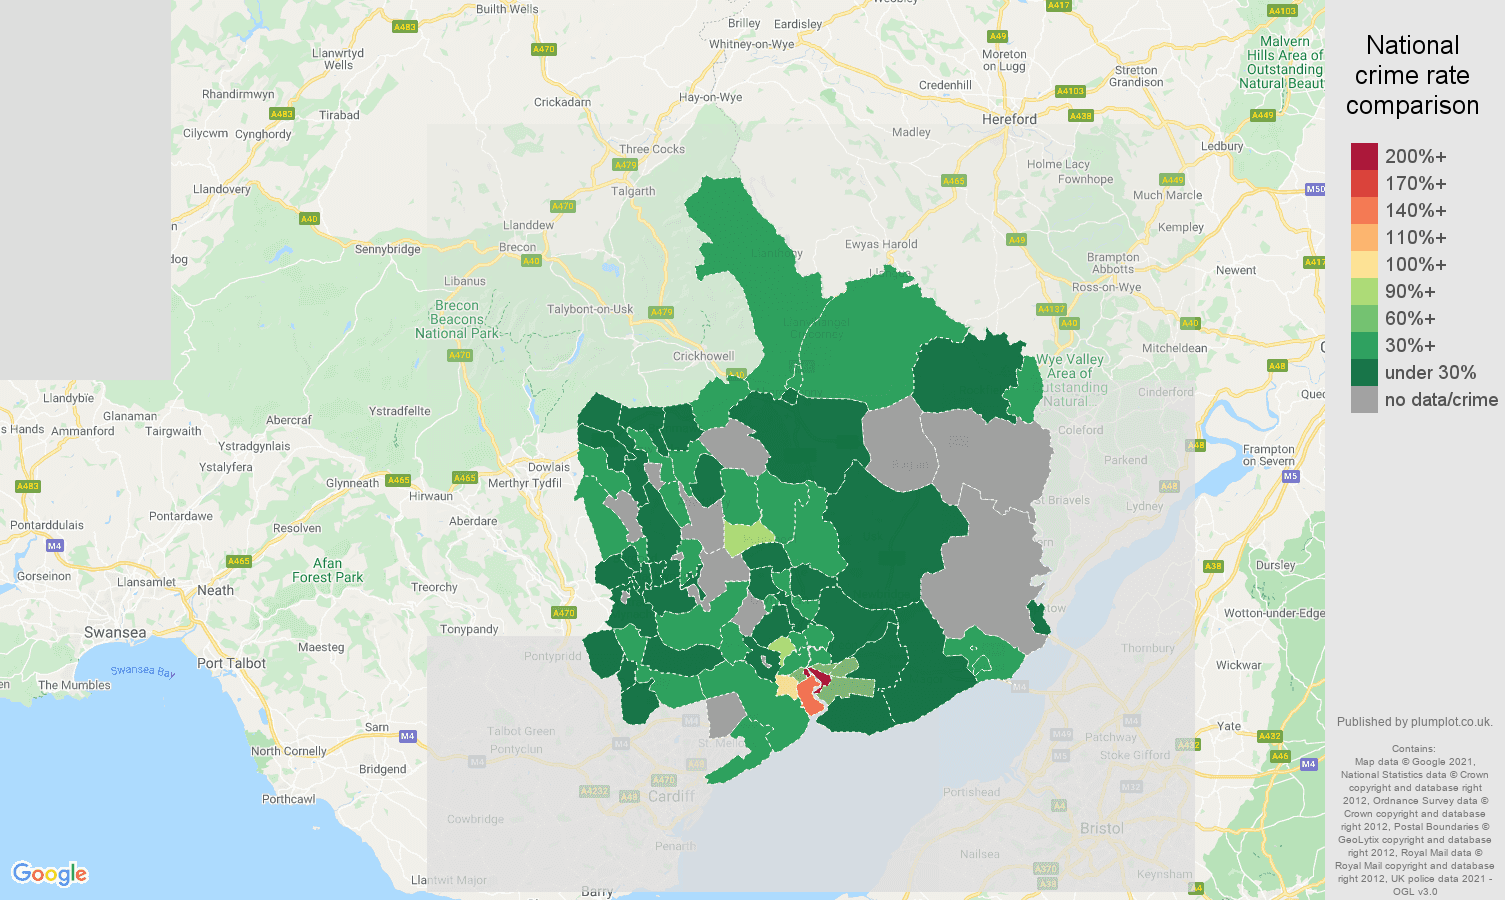 Gwent bicycle theft crime rate comparison map